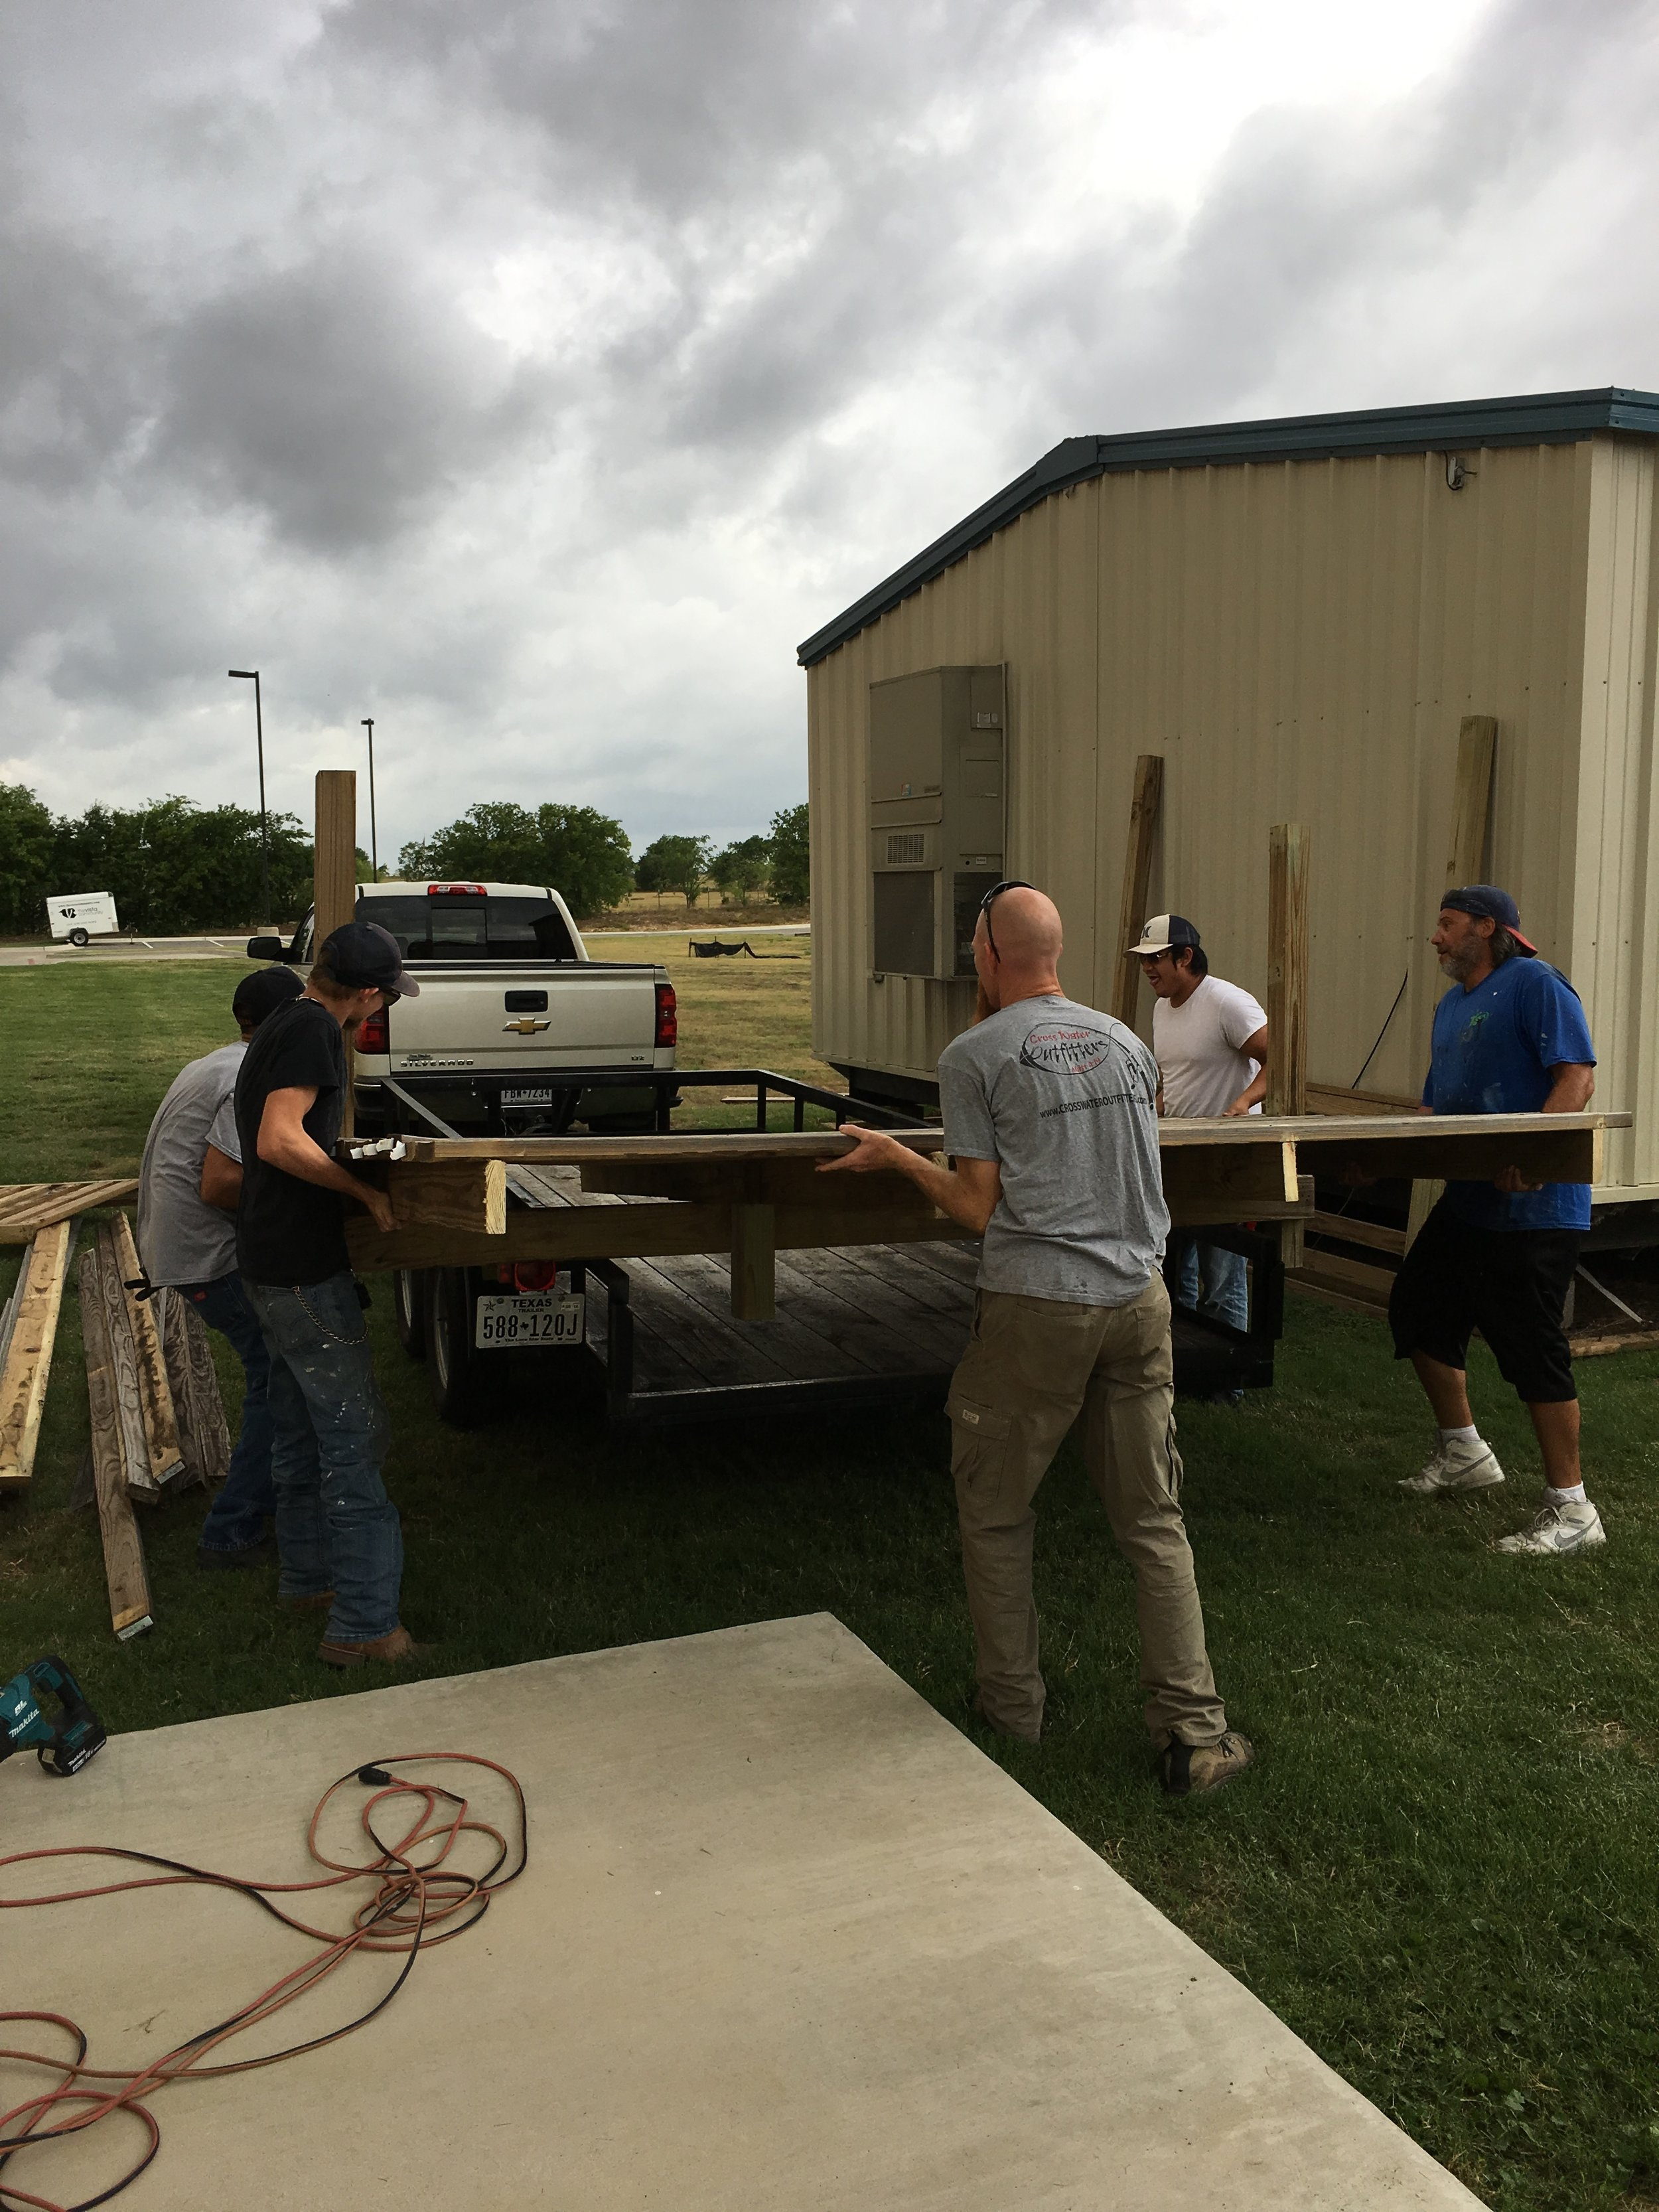 Moving Portables to the Other Side